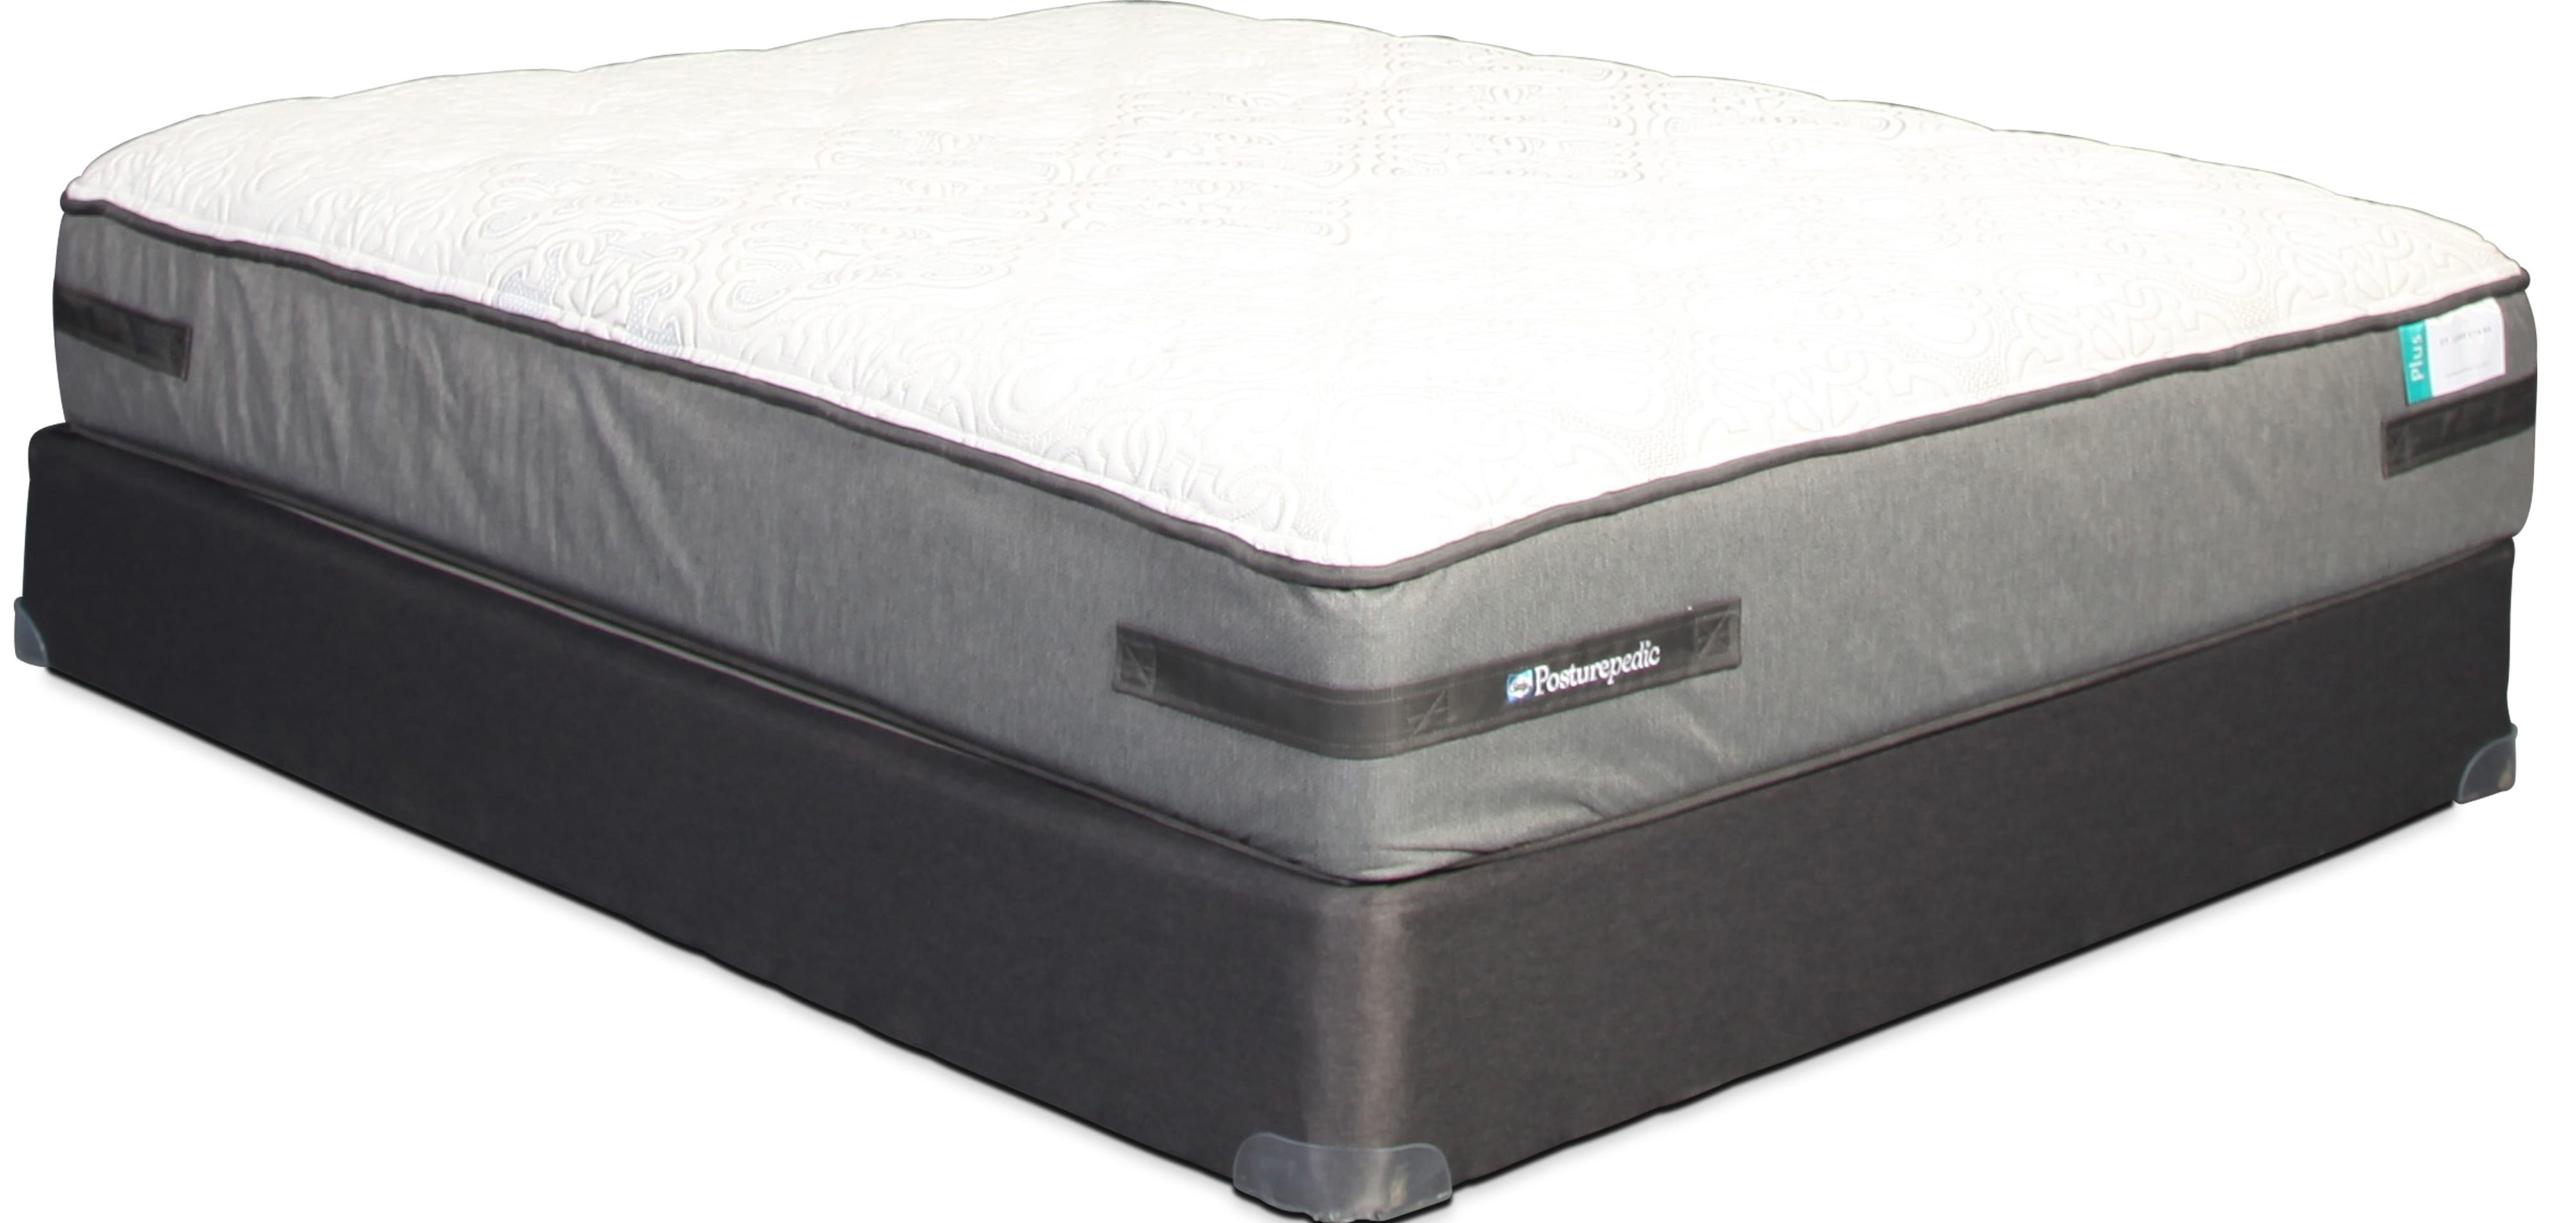 Sealy St. James Park Cushion Firm King Mattress and Split Boxsprings